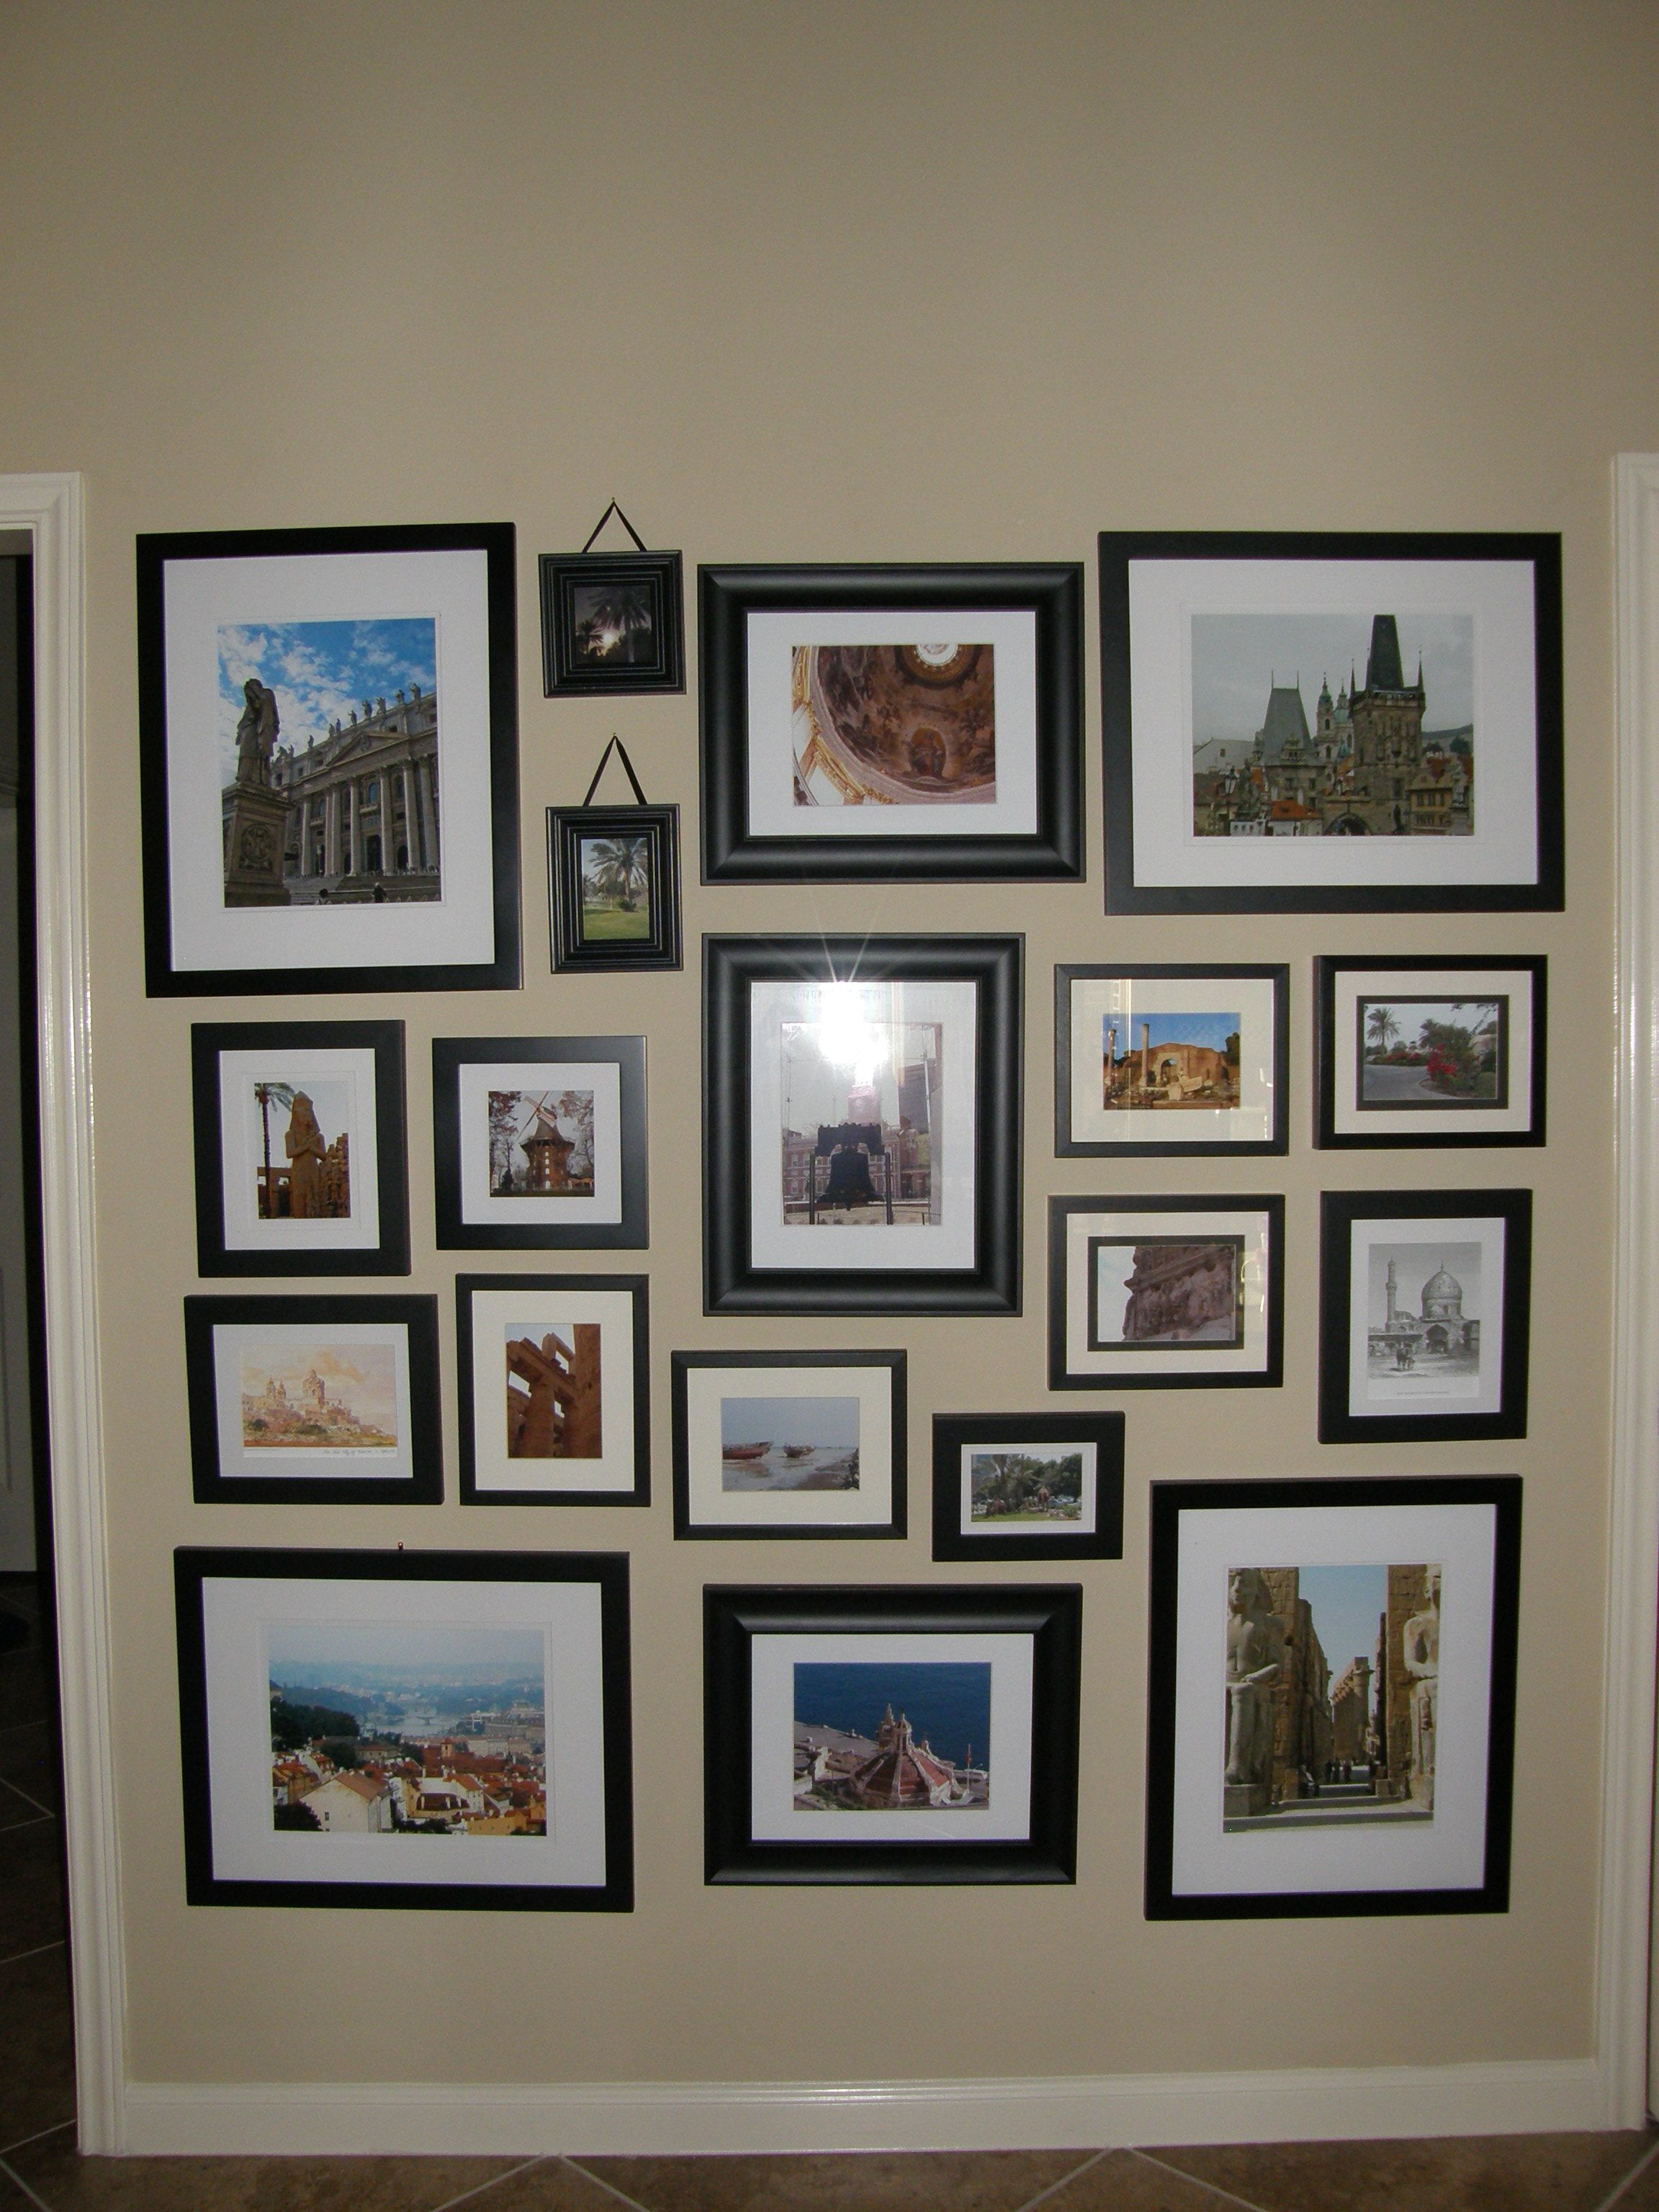 Color of art gallery walls - Our Travels Gallery Wall Black And White Or Color